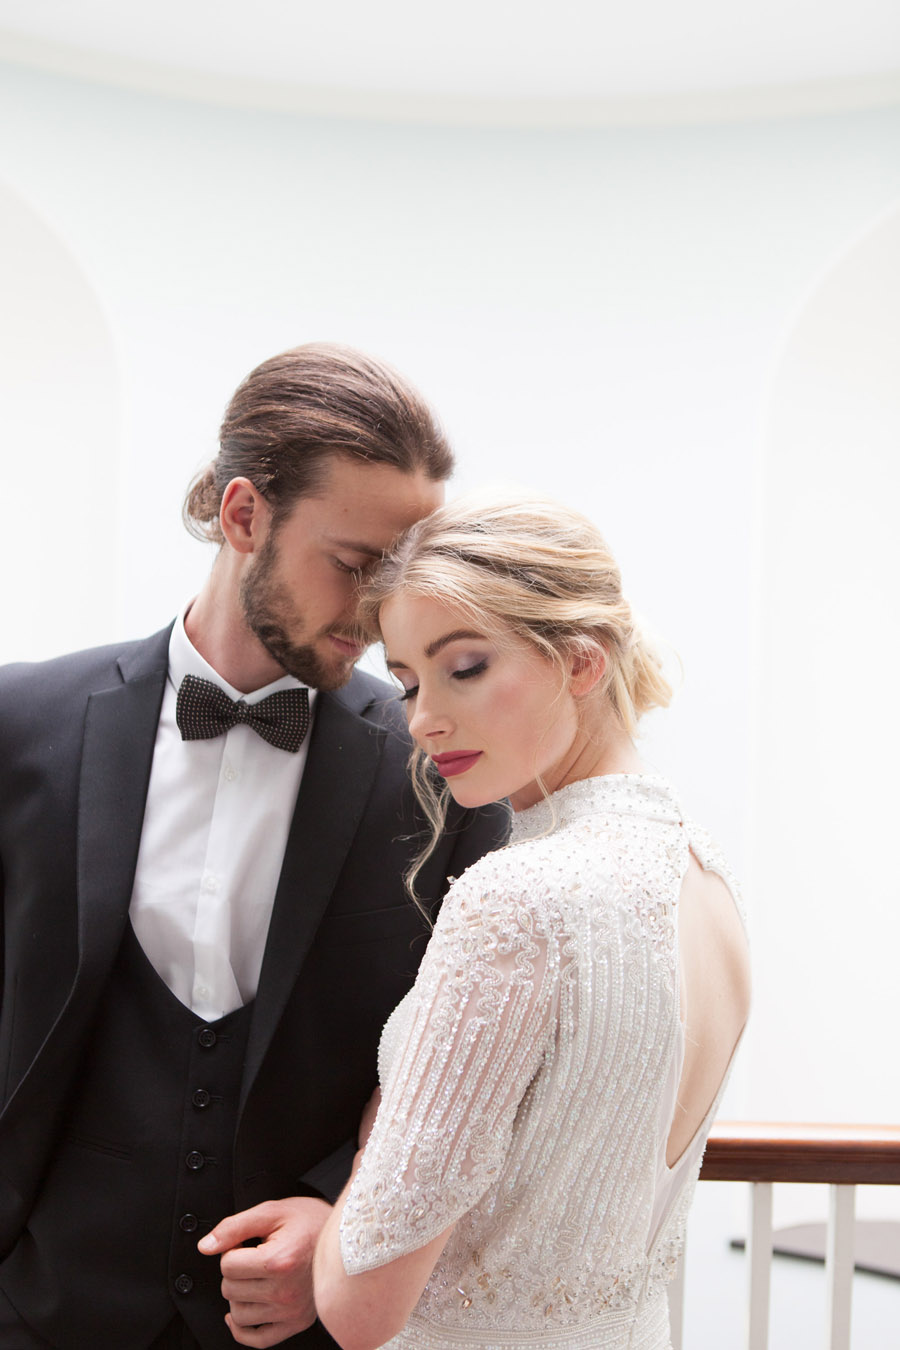 Elegant and timeless wedding look for 2019 brides and grooms, image credit Amanda Karen Photography (34)